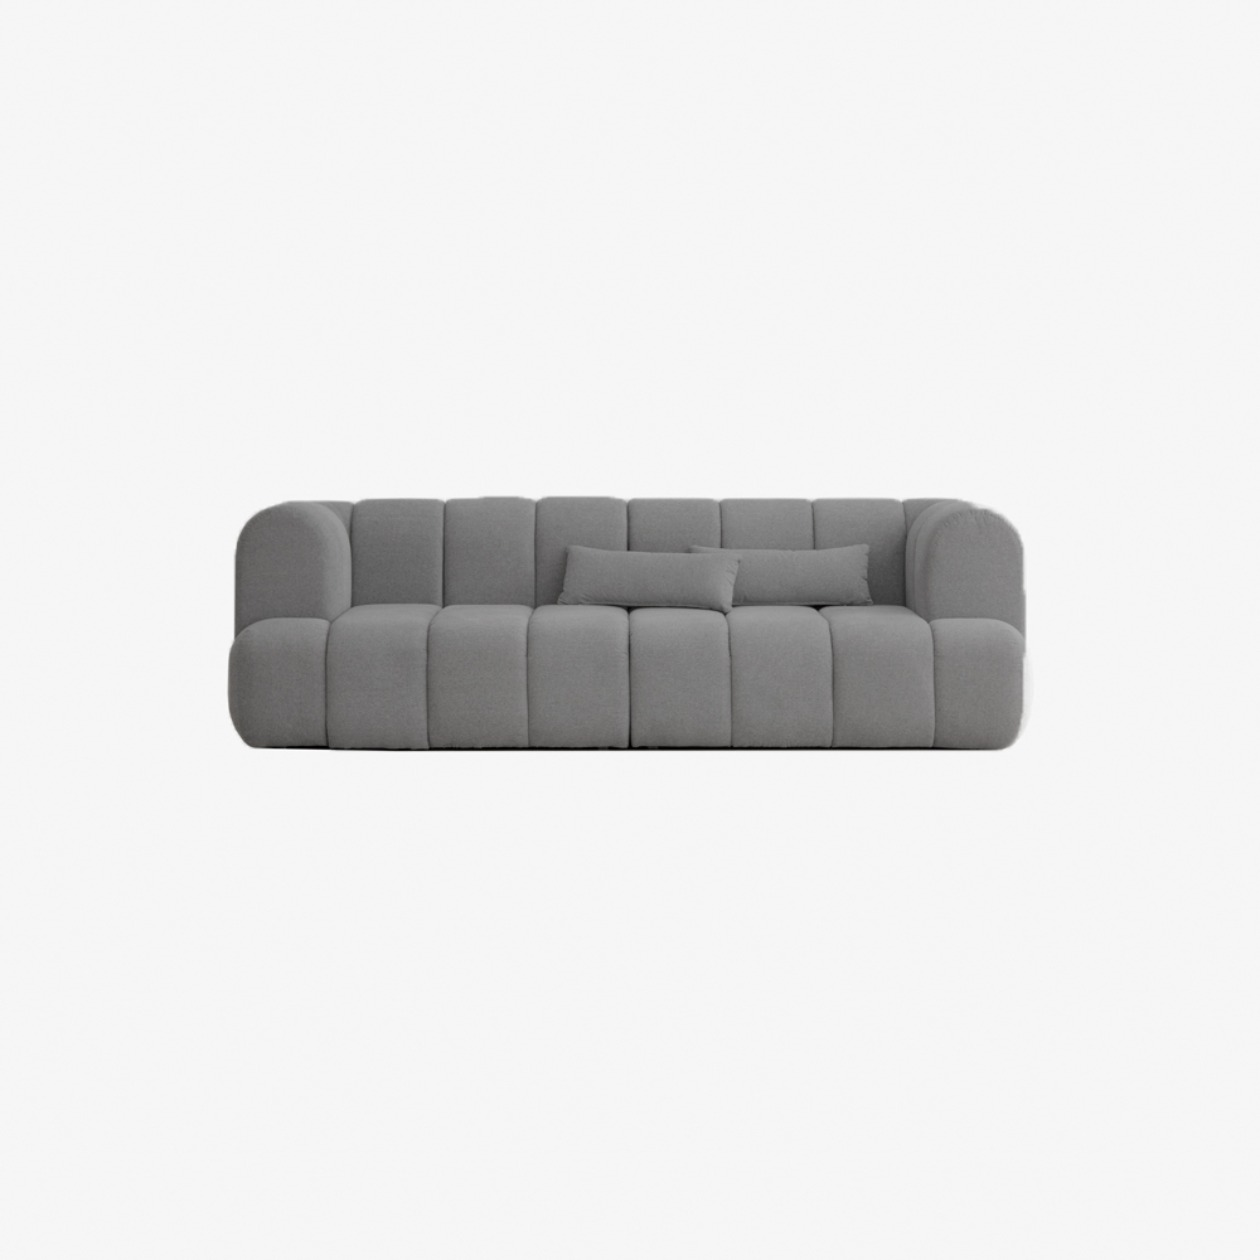 MONO SOFA / DIM GRAY DP